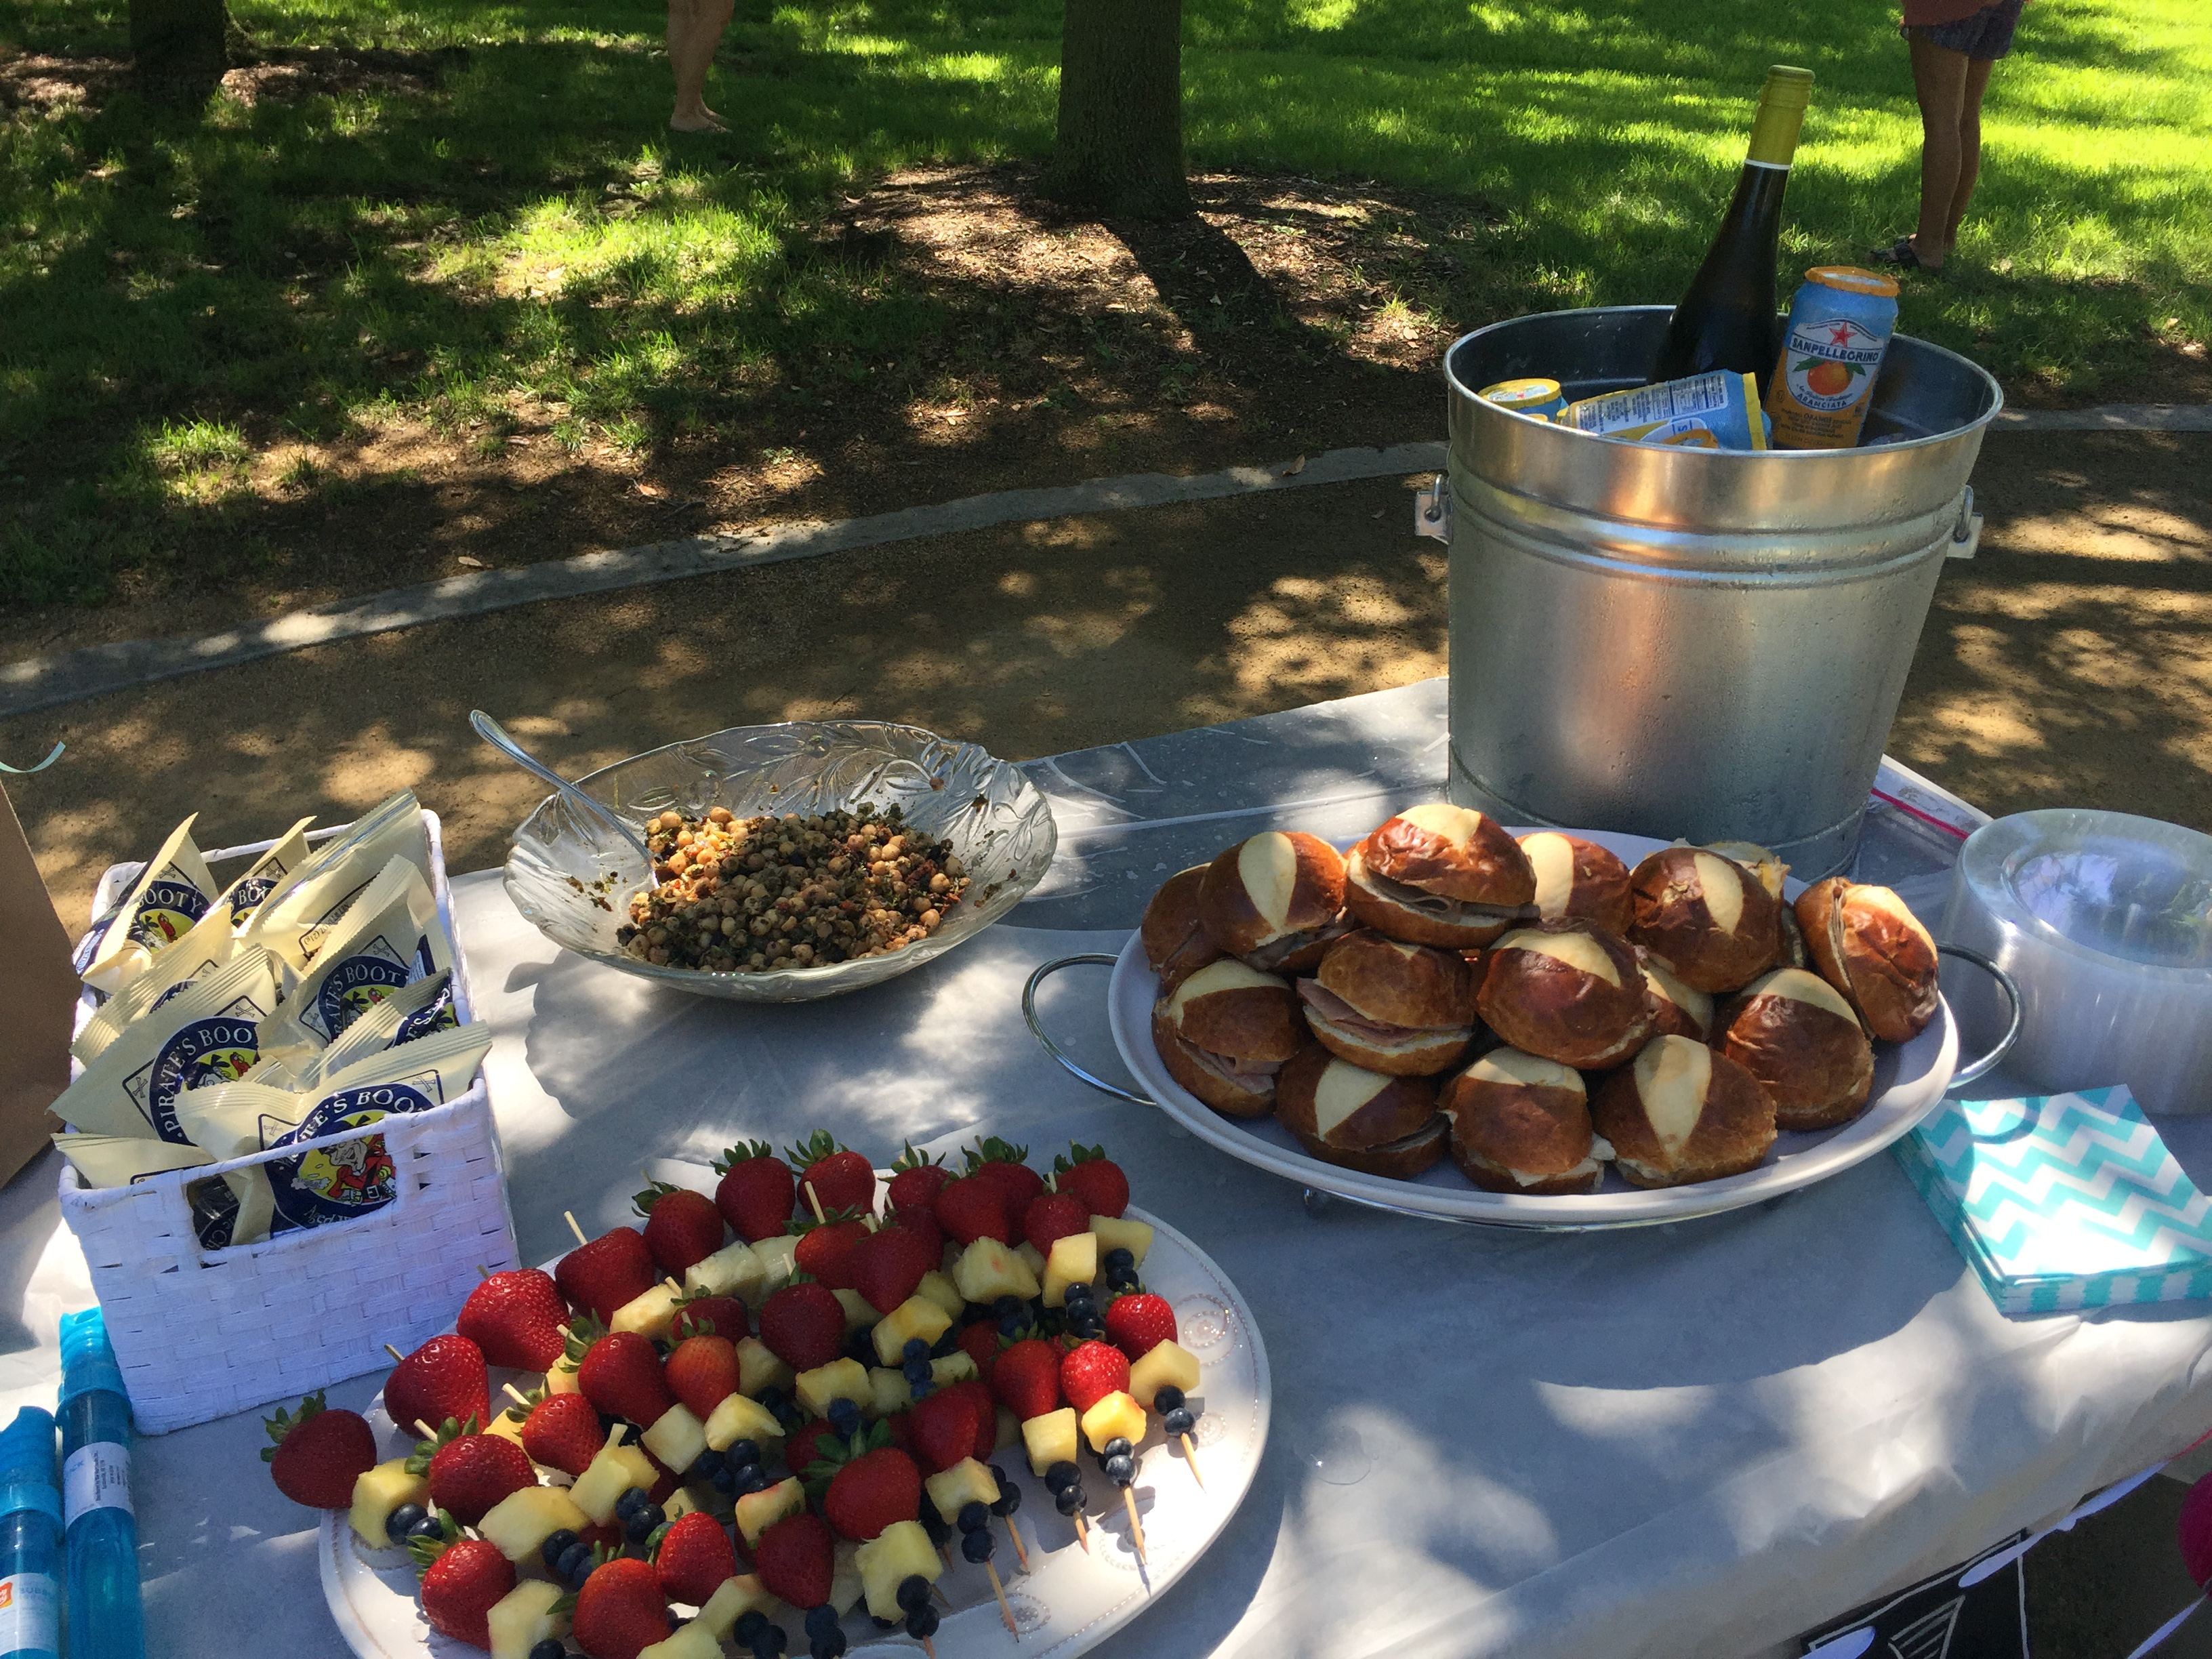 These Particular Skewers Were Made For An Outdoor Park Party It Was Summertime So I Did Strawberries Pineapples And Blueberries